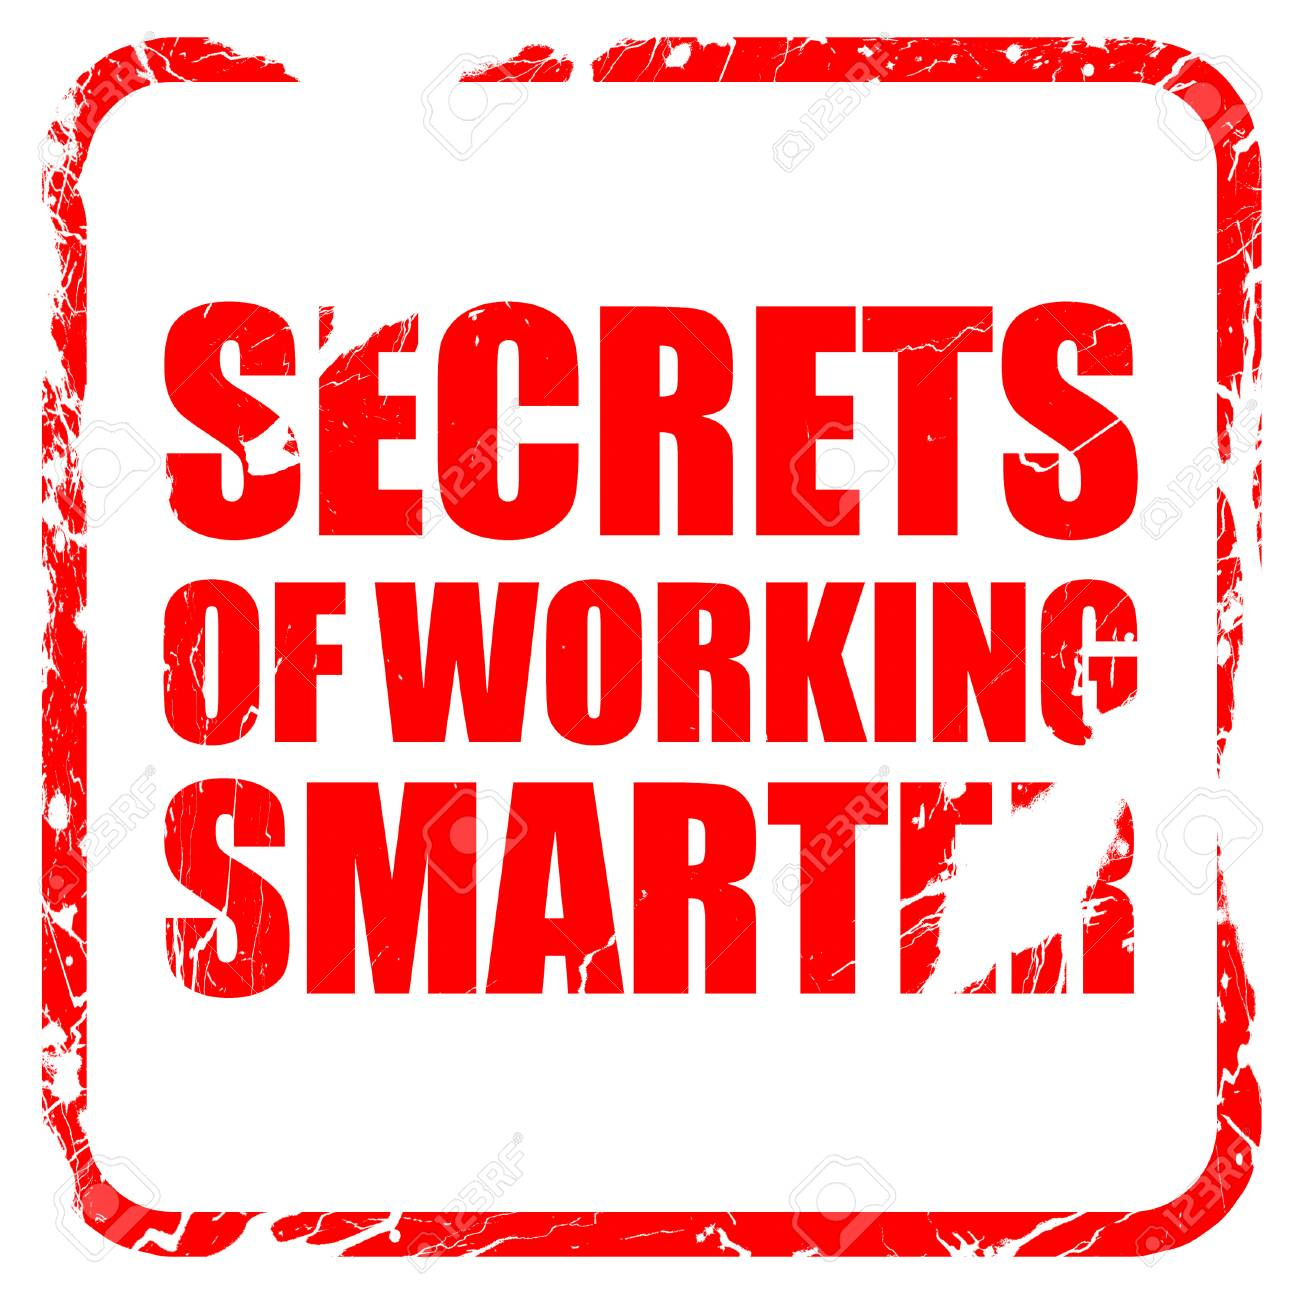 Secrects Of Working Smarter Red Rubber Stamp With Grunge Edges